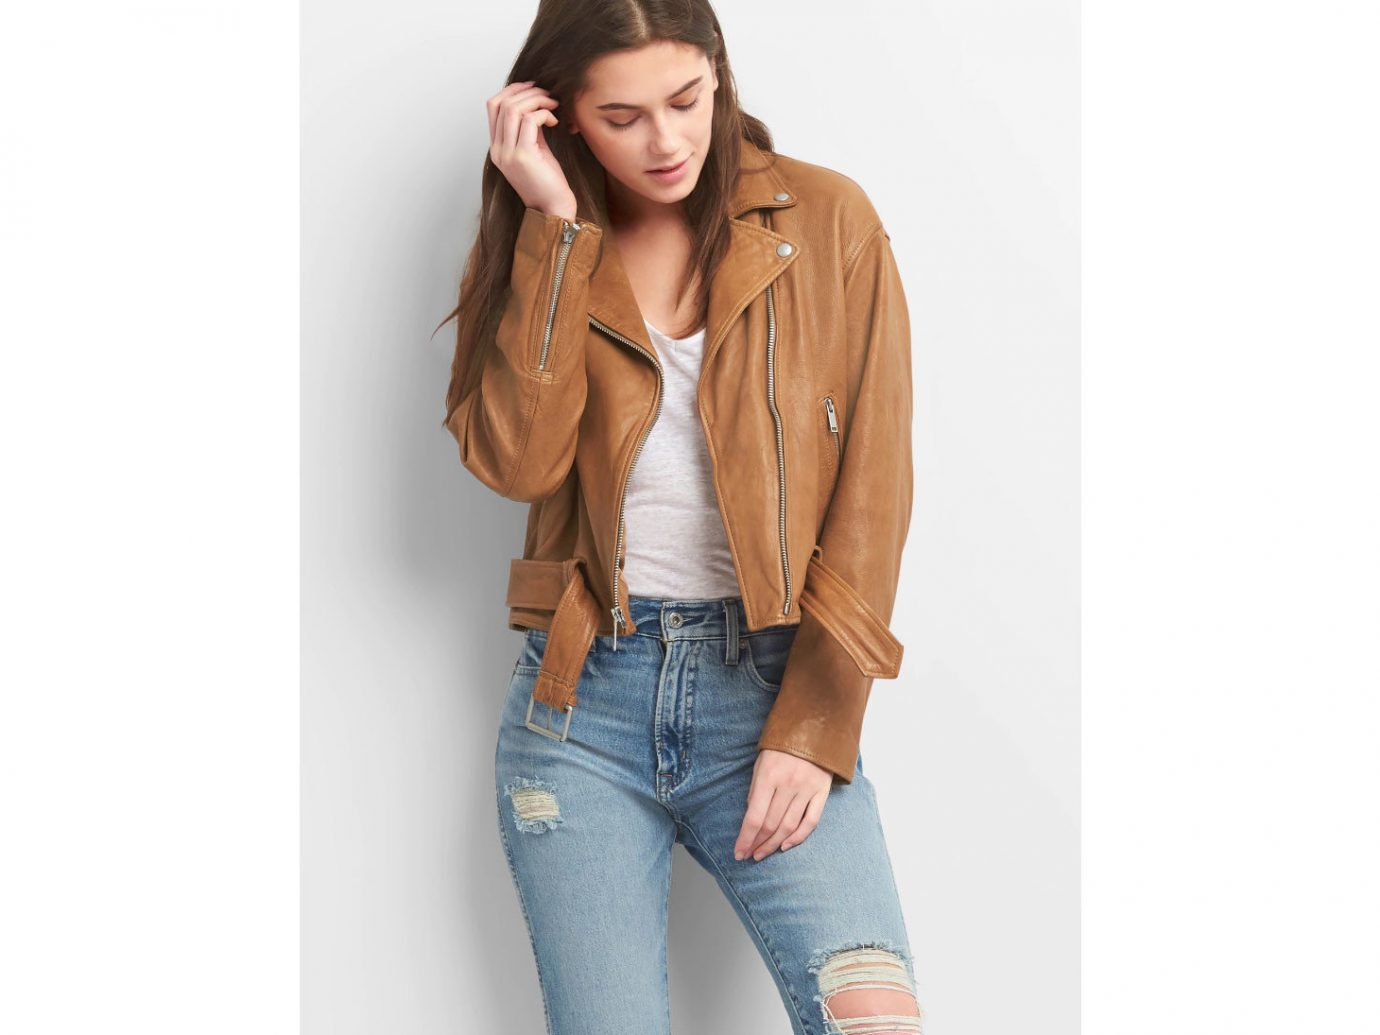 Packing Tips Style + Design Travel Shop clothing person jacket fashion model leather jacket jeans posing sleeve leather waist neck beige denim trouser